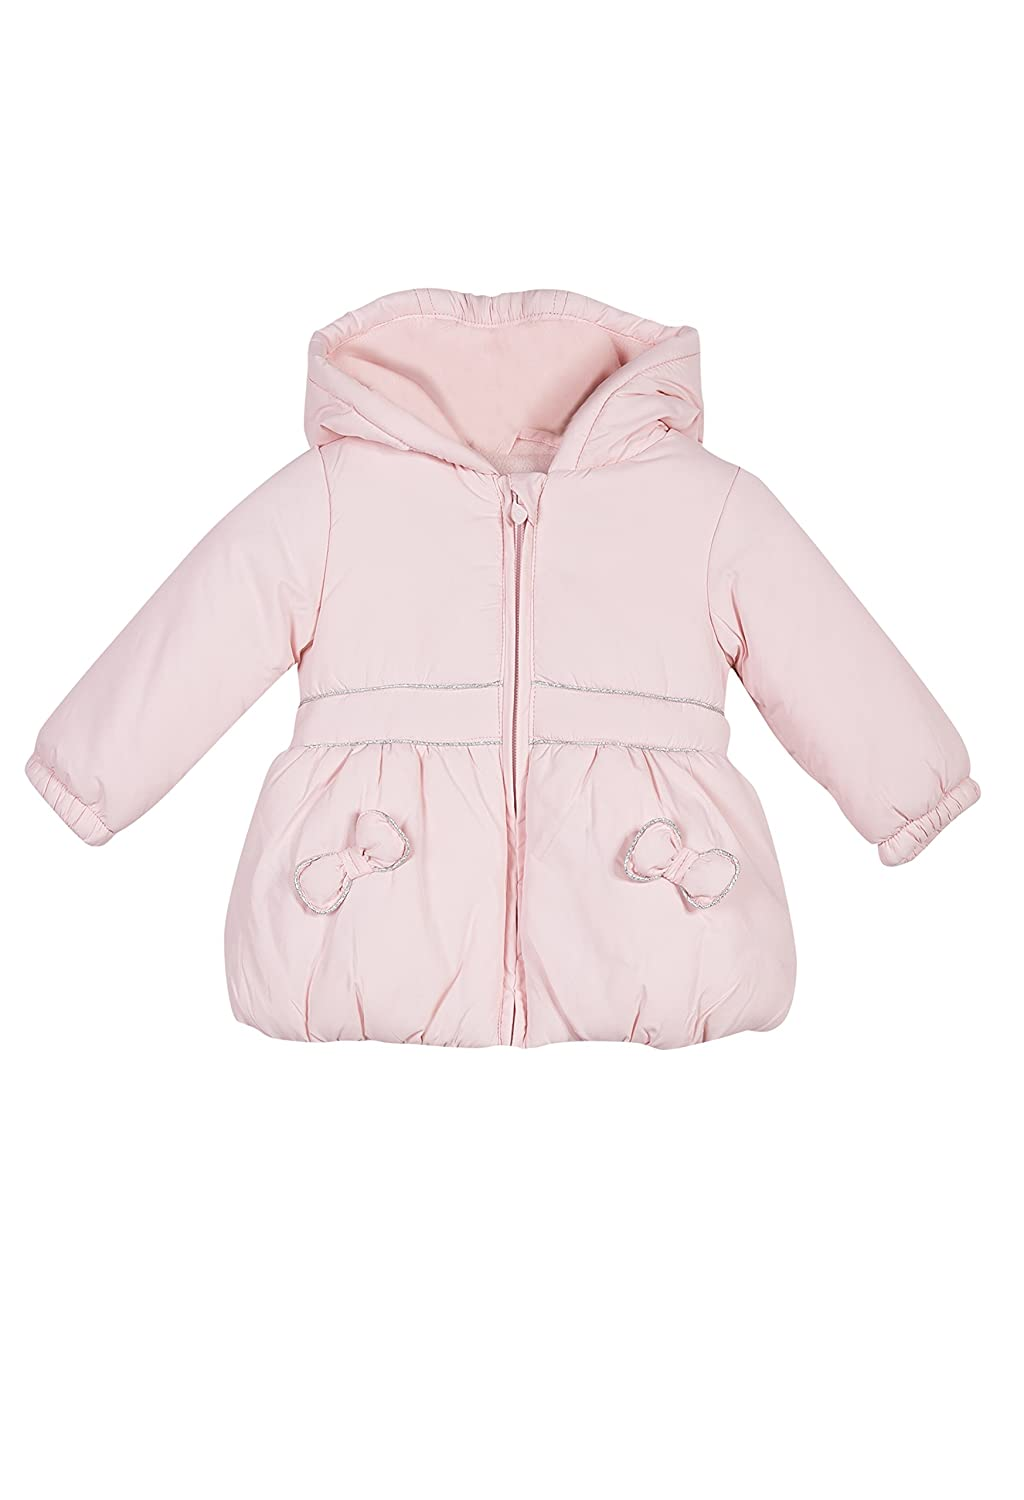 Z Baby Girls Doudoune Long Sleeve Jacket